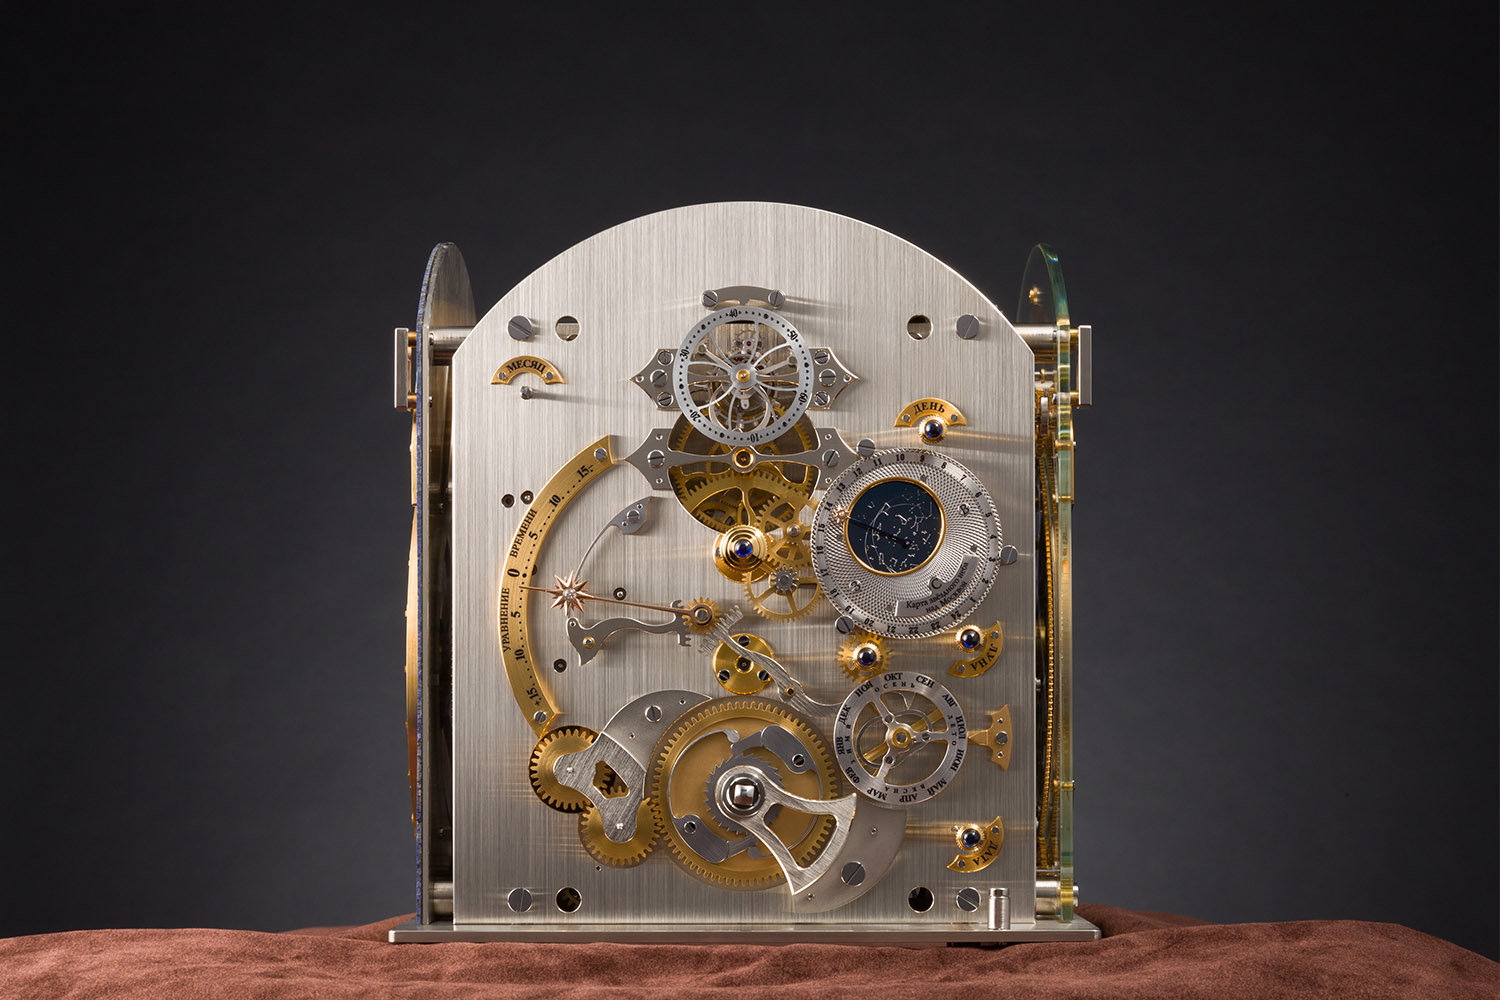 konstantin-chaykin-moscow-comptus-easter-clock-most-complicated-clock-ever-made-in-russia-8